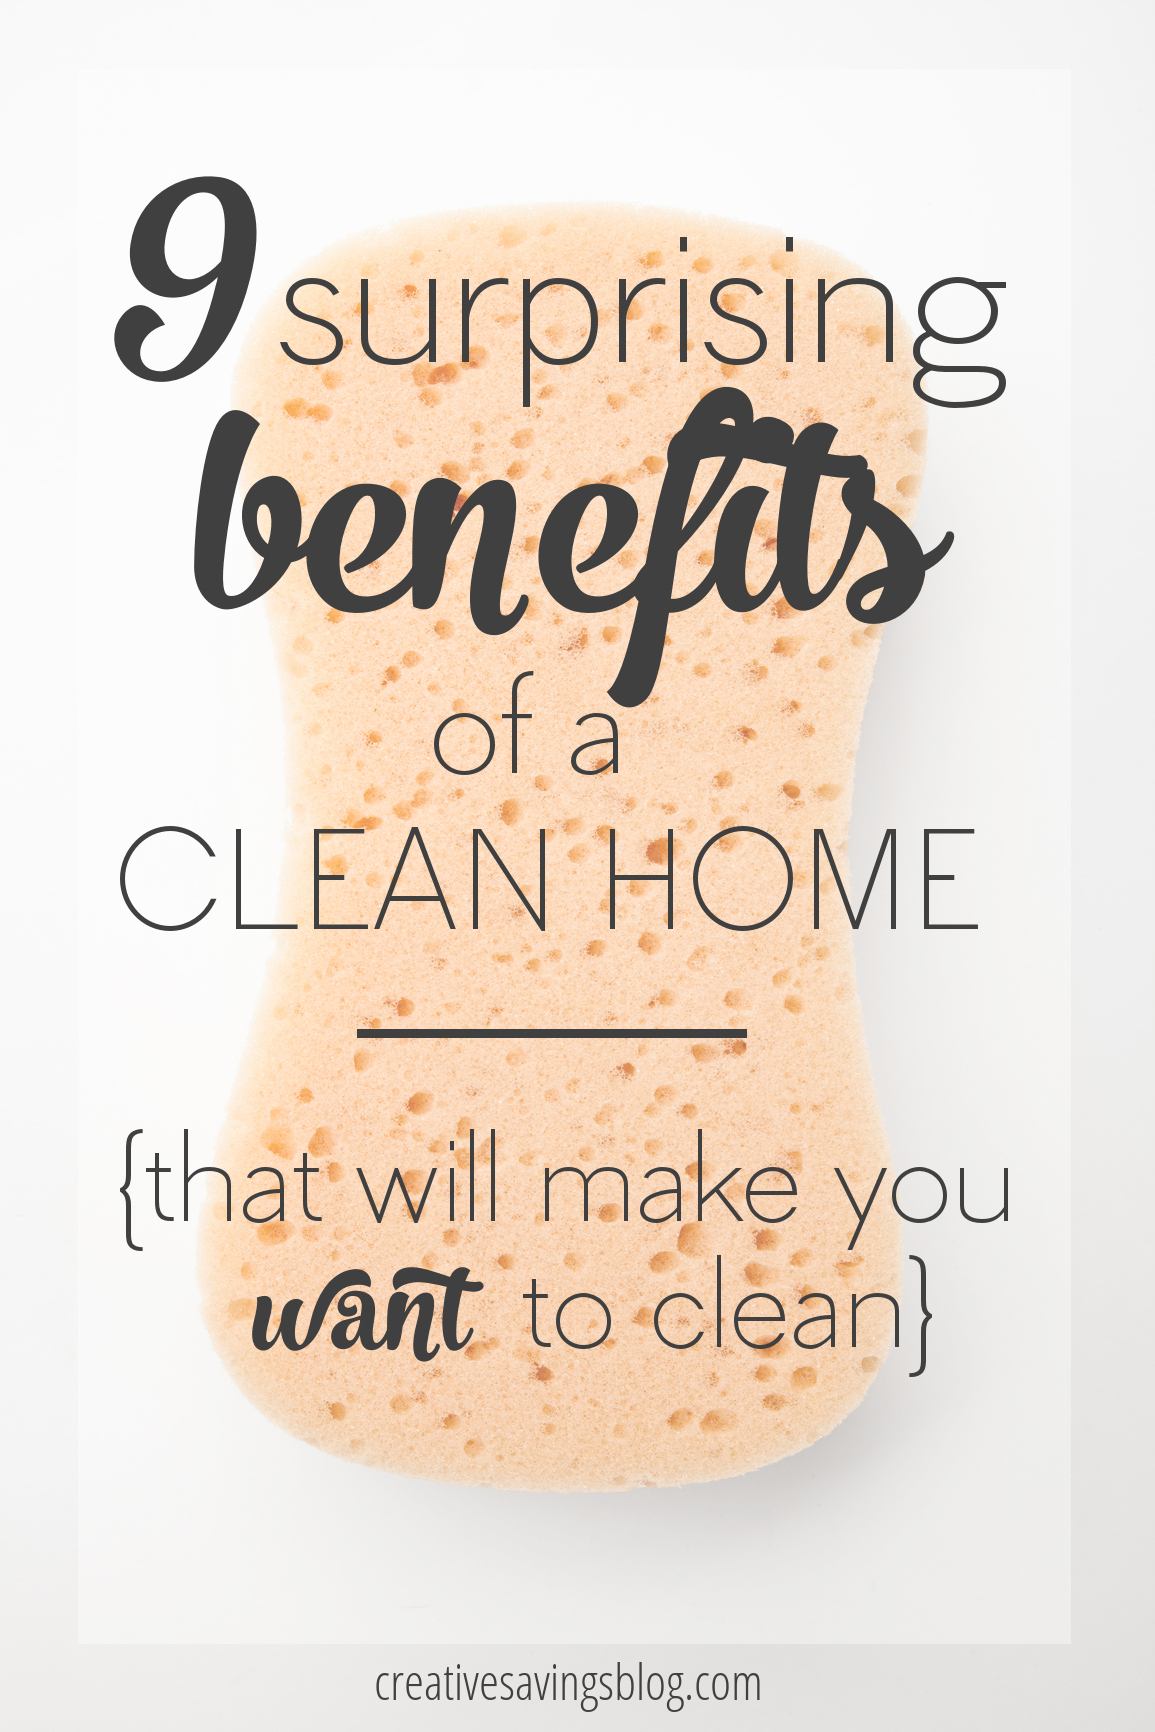 For those of use who hate to clean, we wonder what the whole purpose is of keeping a tidy and clutter-free home. These 9 surprising benefits will completely change your perspective on cleaning in general, and by the time you're done reading this post, I promise you'll want to establish a regular cleaning routine right away! #cleanhoome #benefitsofcleaning #howtomakemyselfclean #motivatingtoclean #cleanhometips